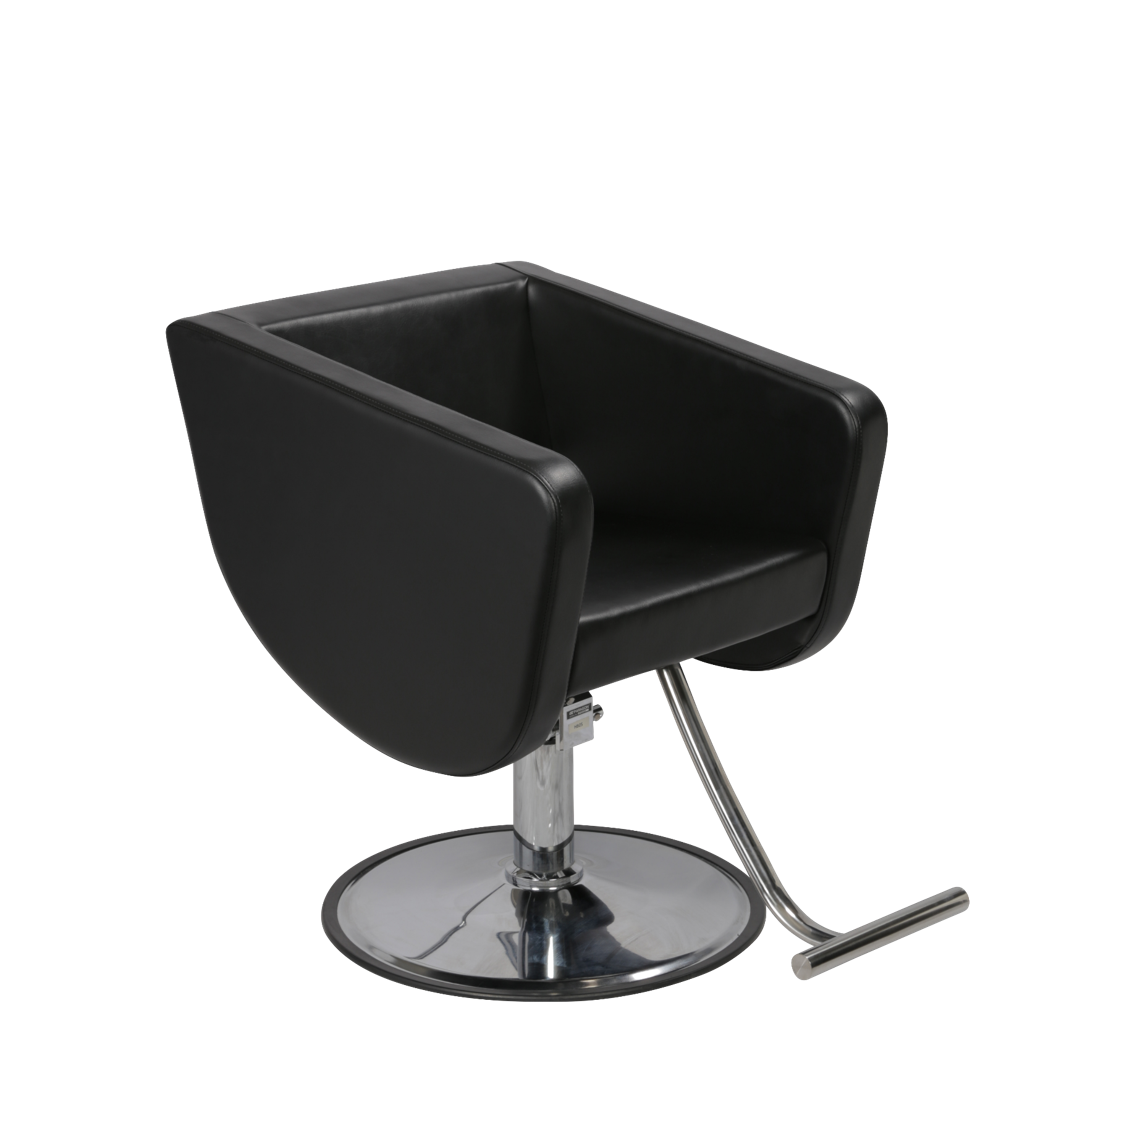 Flynn Salon Styling Chair - Garfield Commercial Enterprises Salon Equipment Spa Furniture Barber Chair Luxury